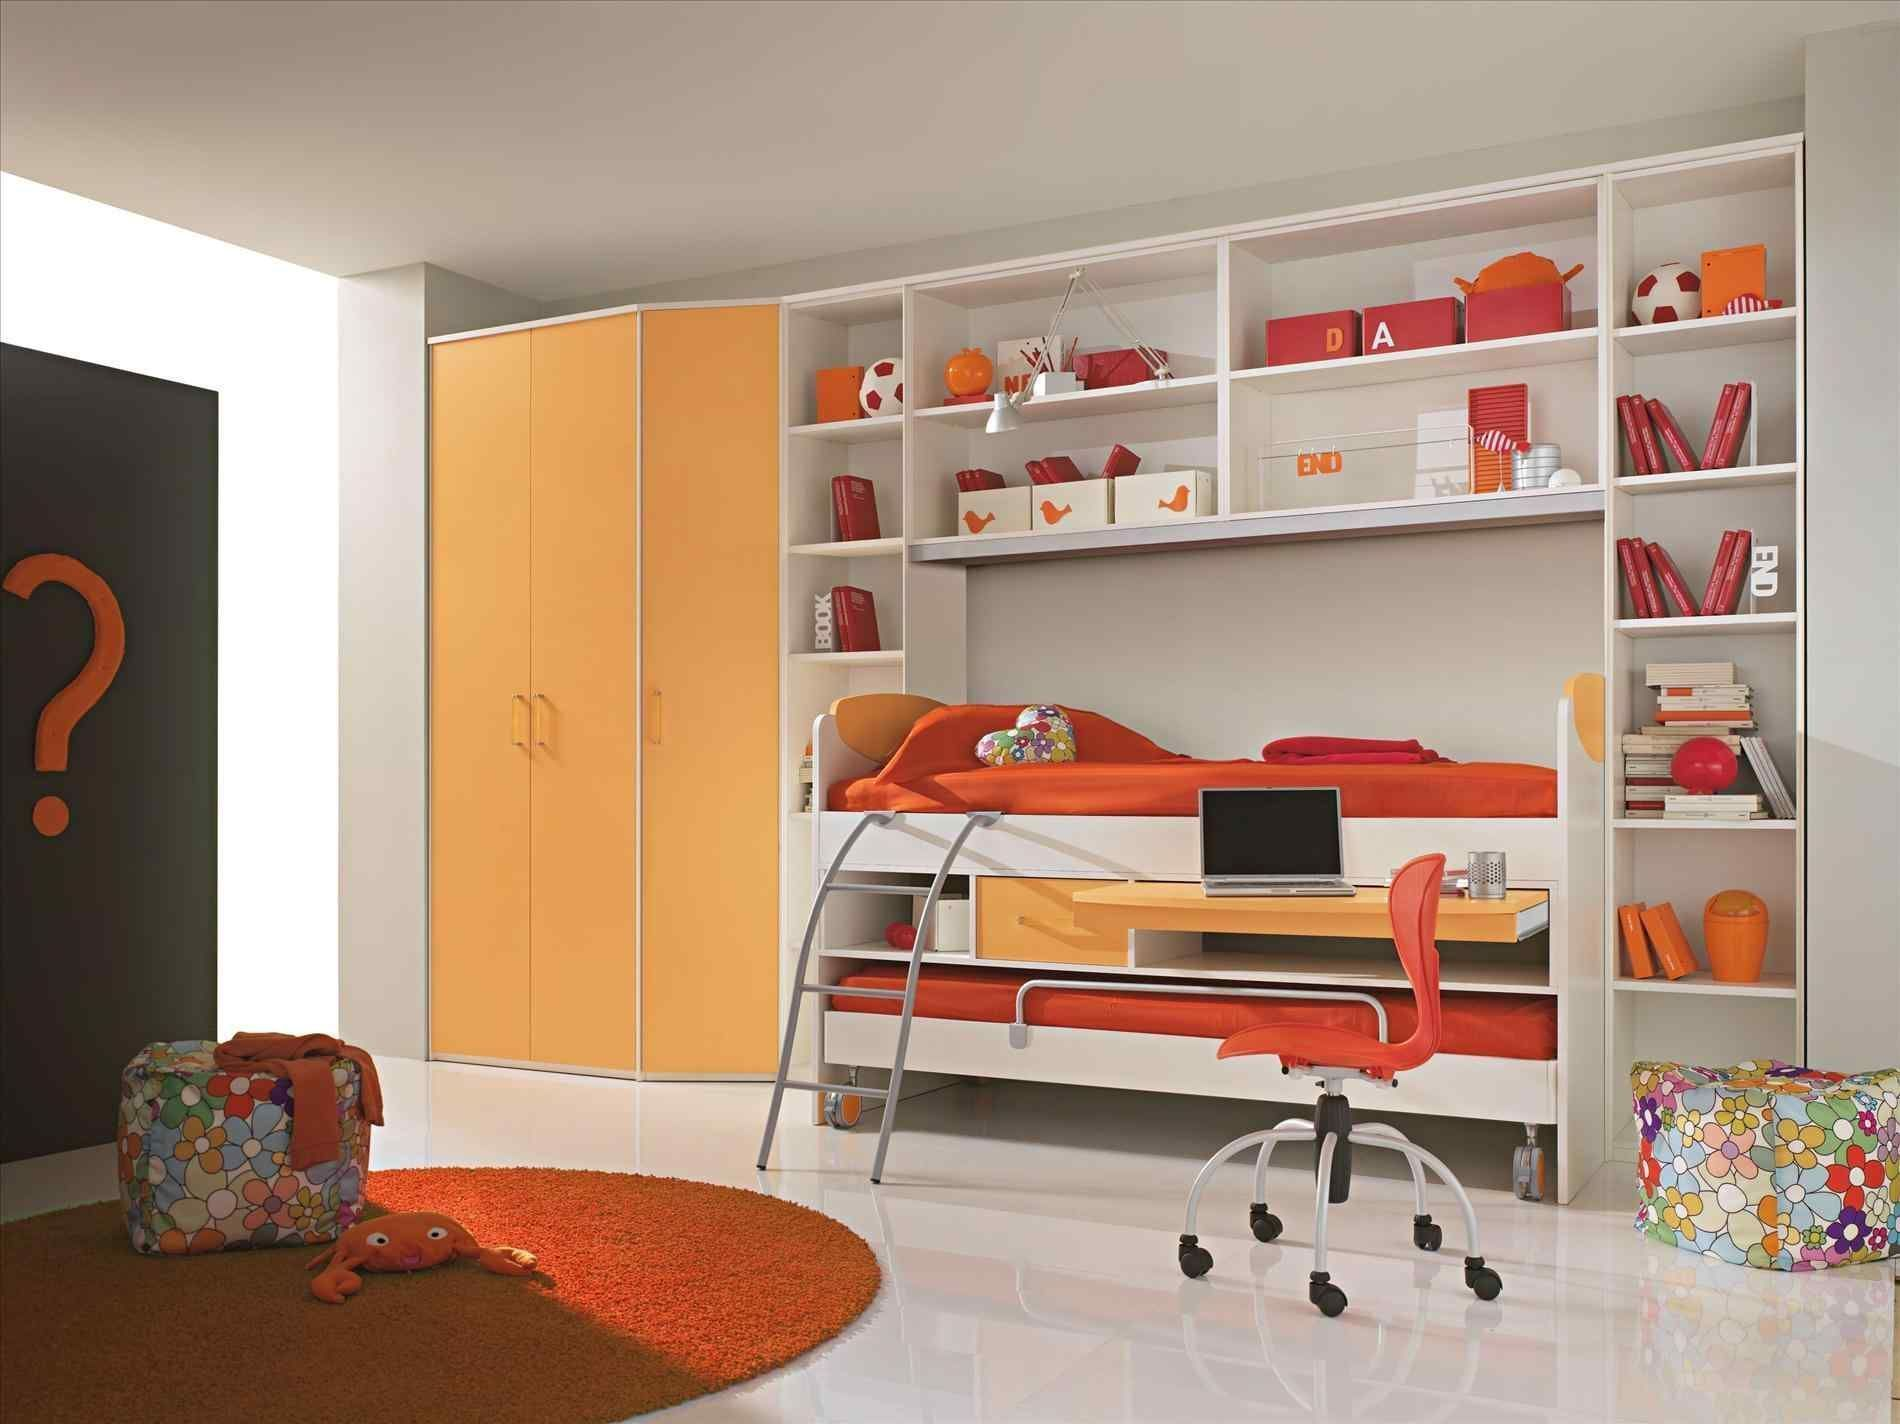 Cool Bunk Bed Ideas Pictures amazing fancy